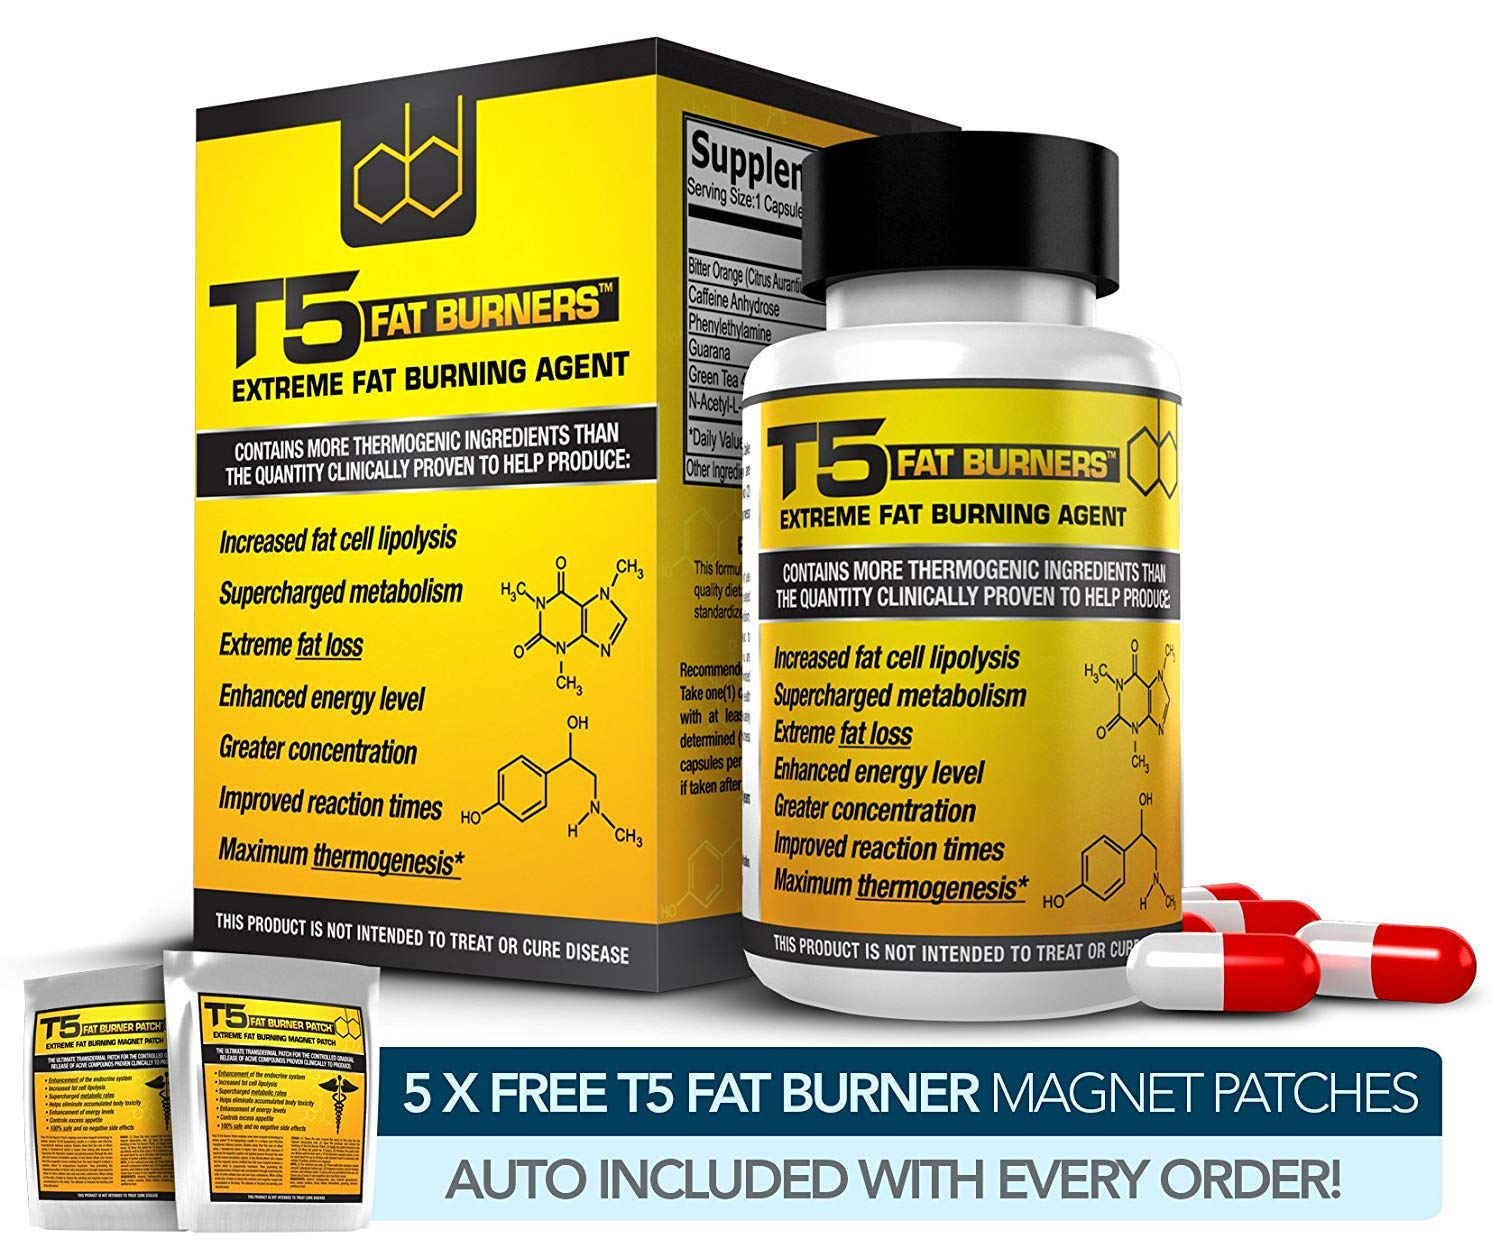 Fat Burners Strongest Legal Diet Weight Loss Pills 1 Month Supply 5 Free T5 Fat Burning Patches